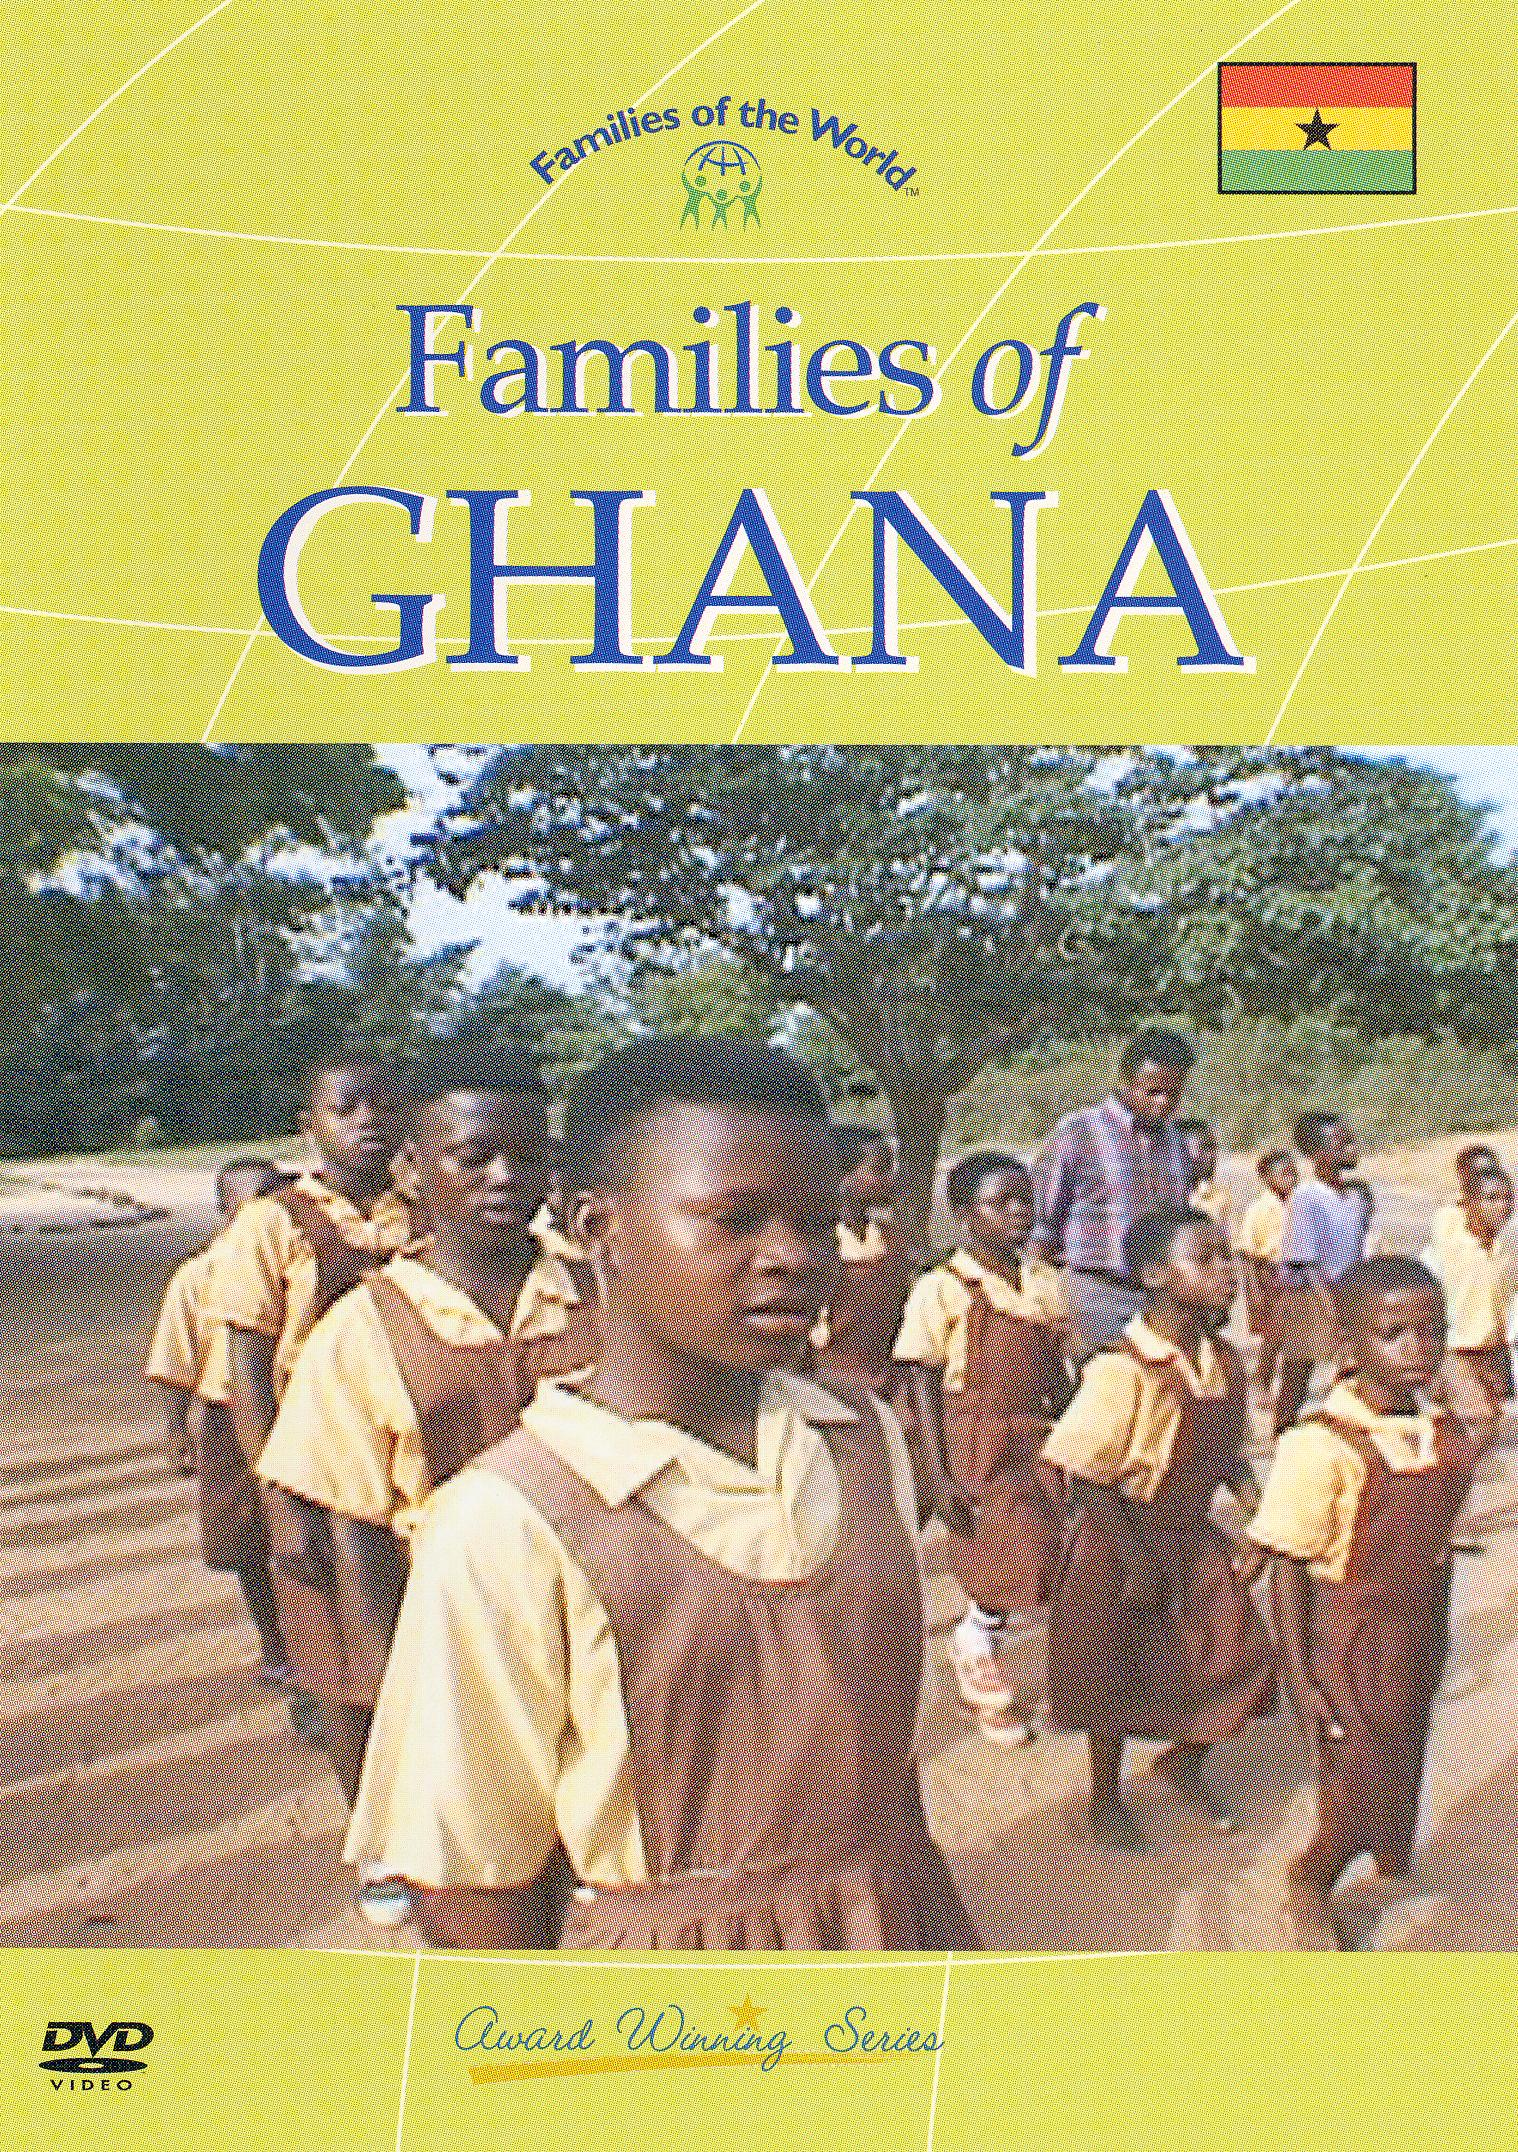 Families of the World: Families of Ghana